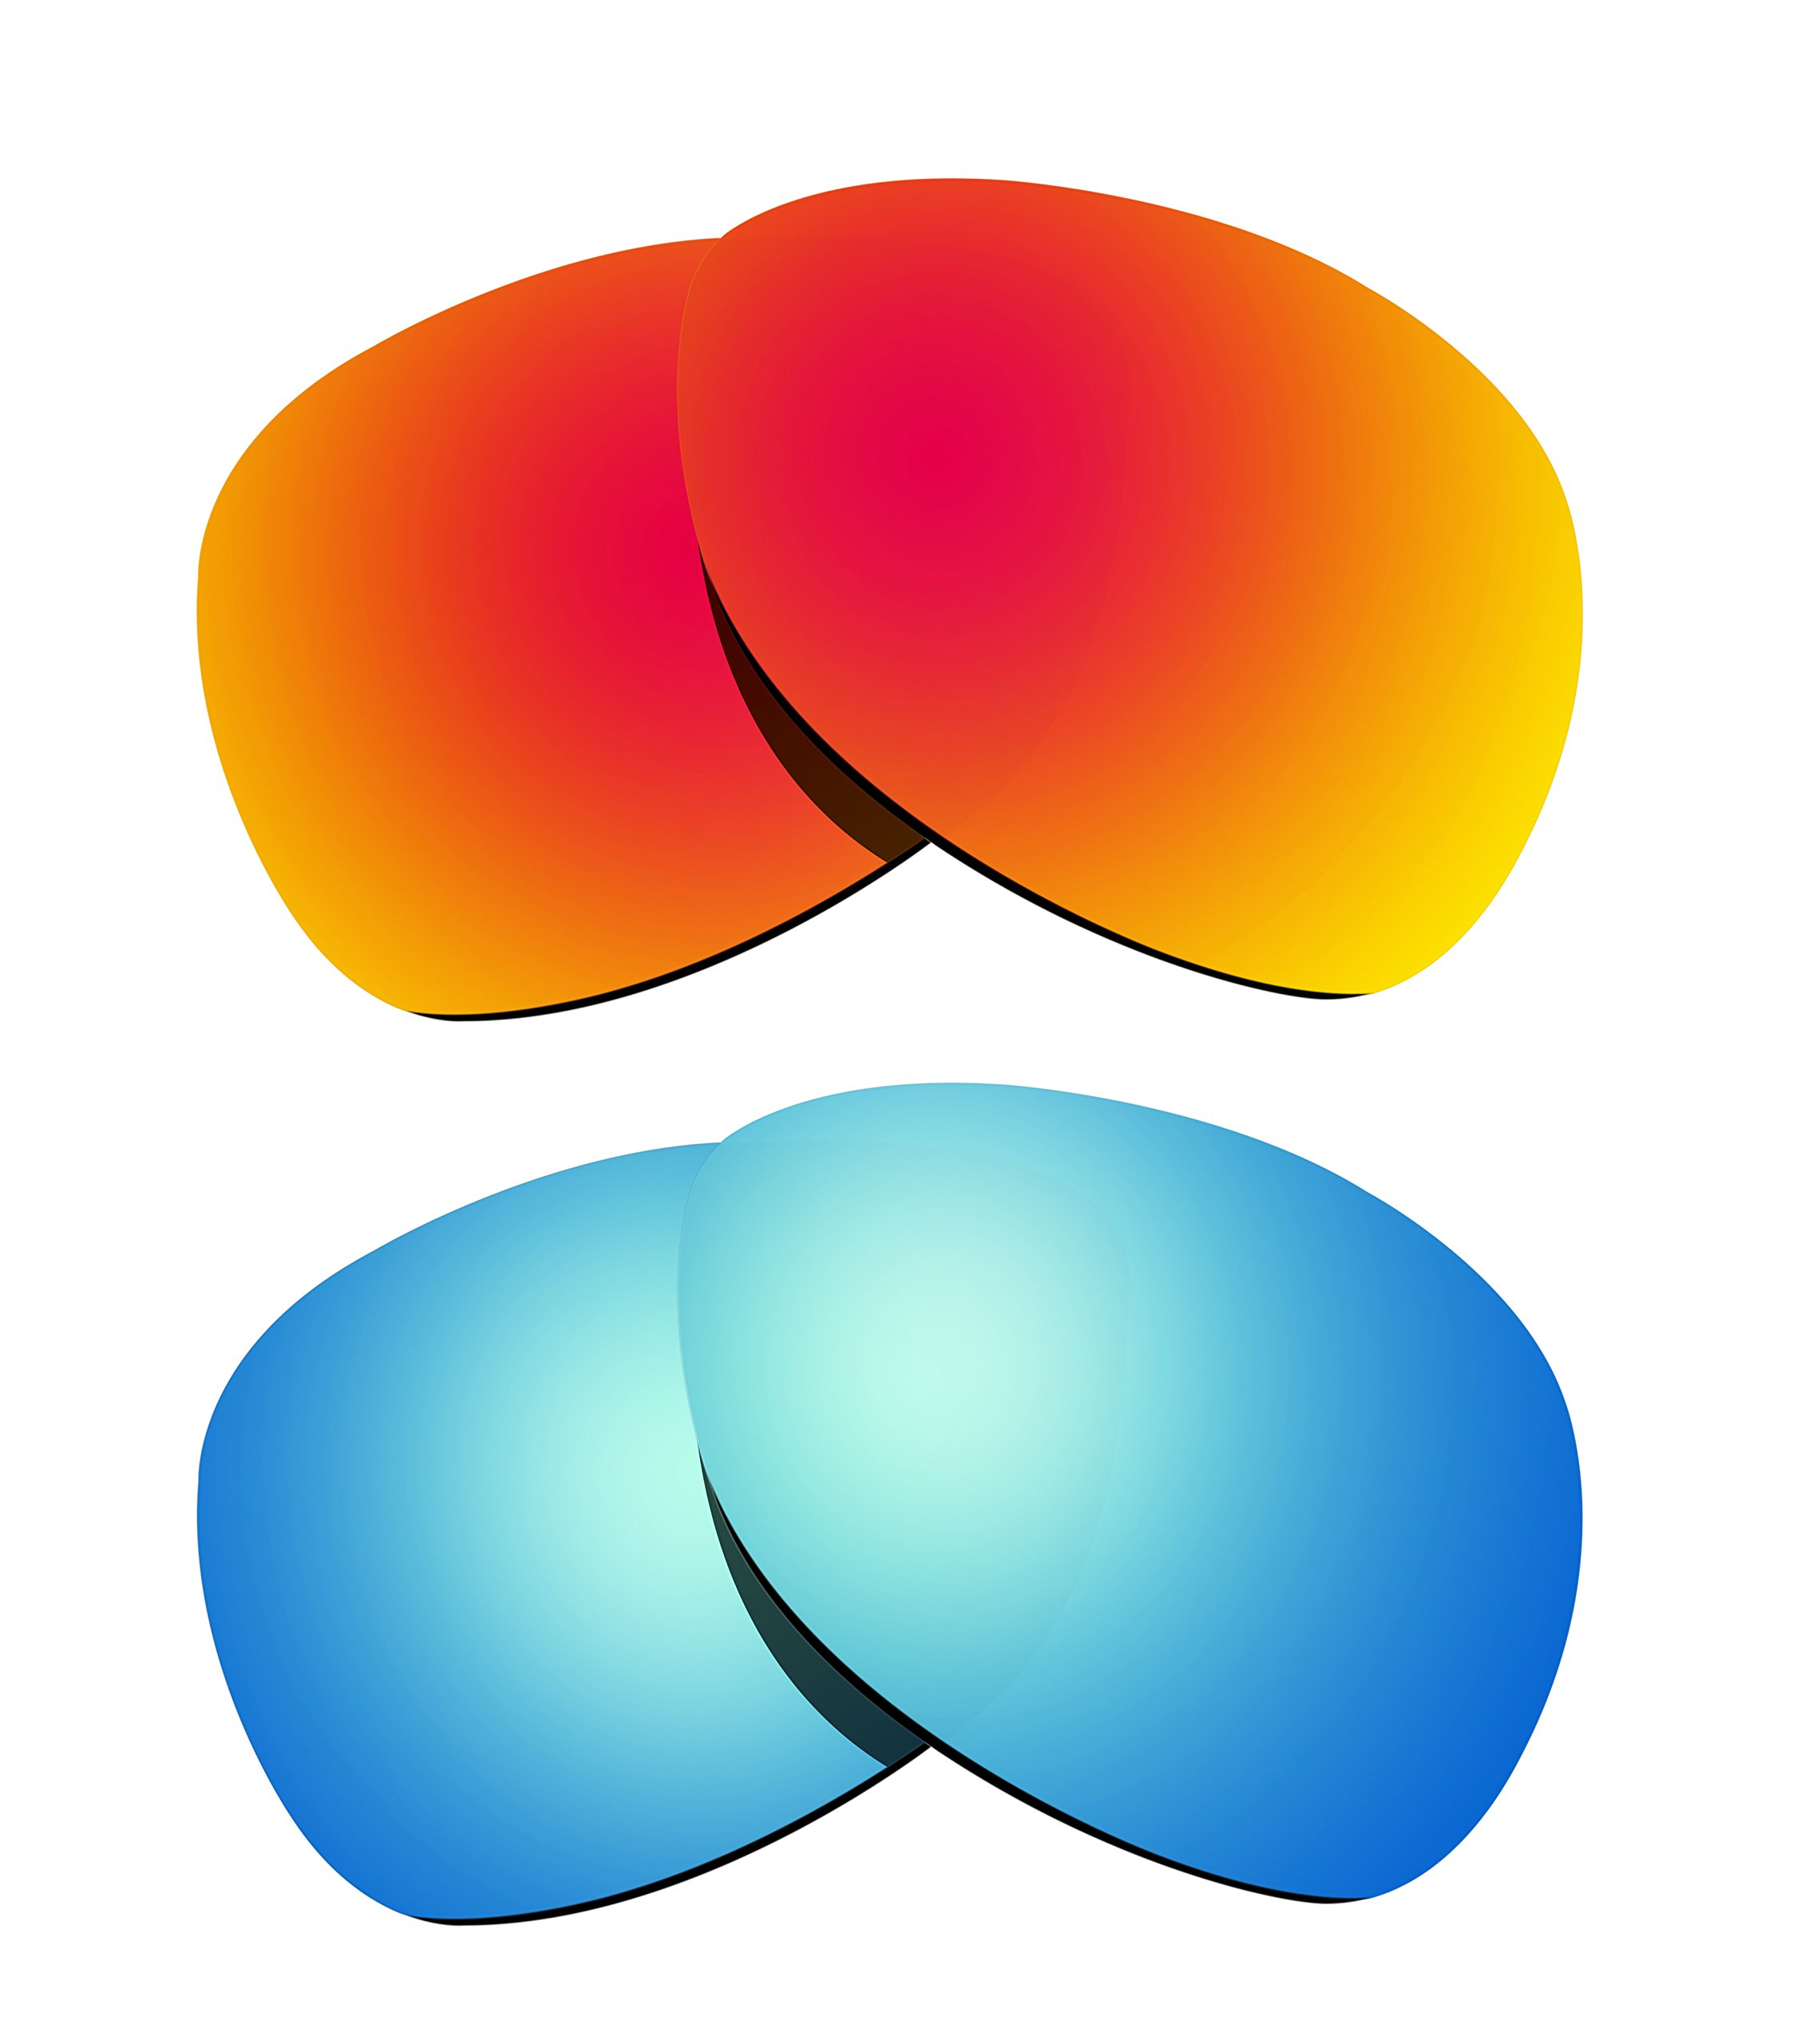 Littlebird4 2 Pairs 1.5mm Polarized Replacement Lenses for Oakley Crosshair Sunglasses - Multiple Options (Fire Red+Ice Blue)